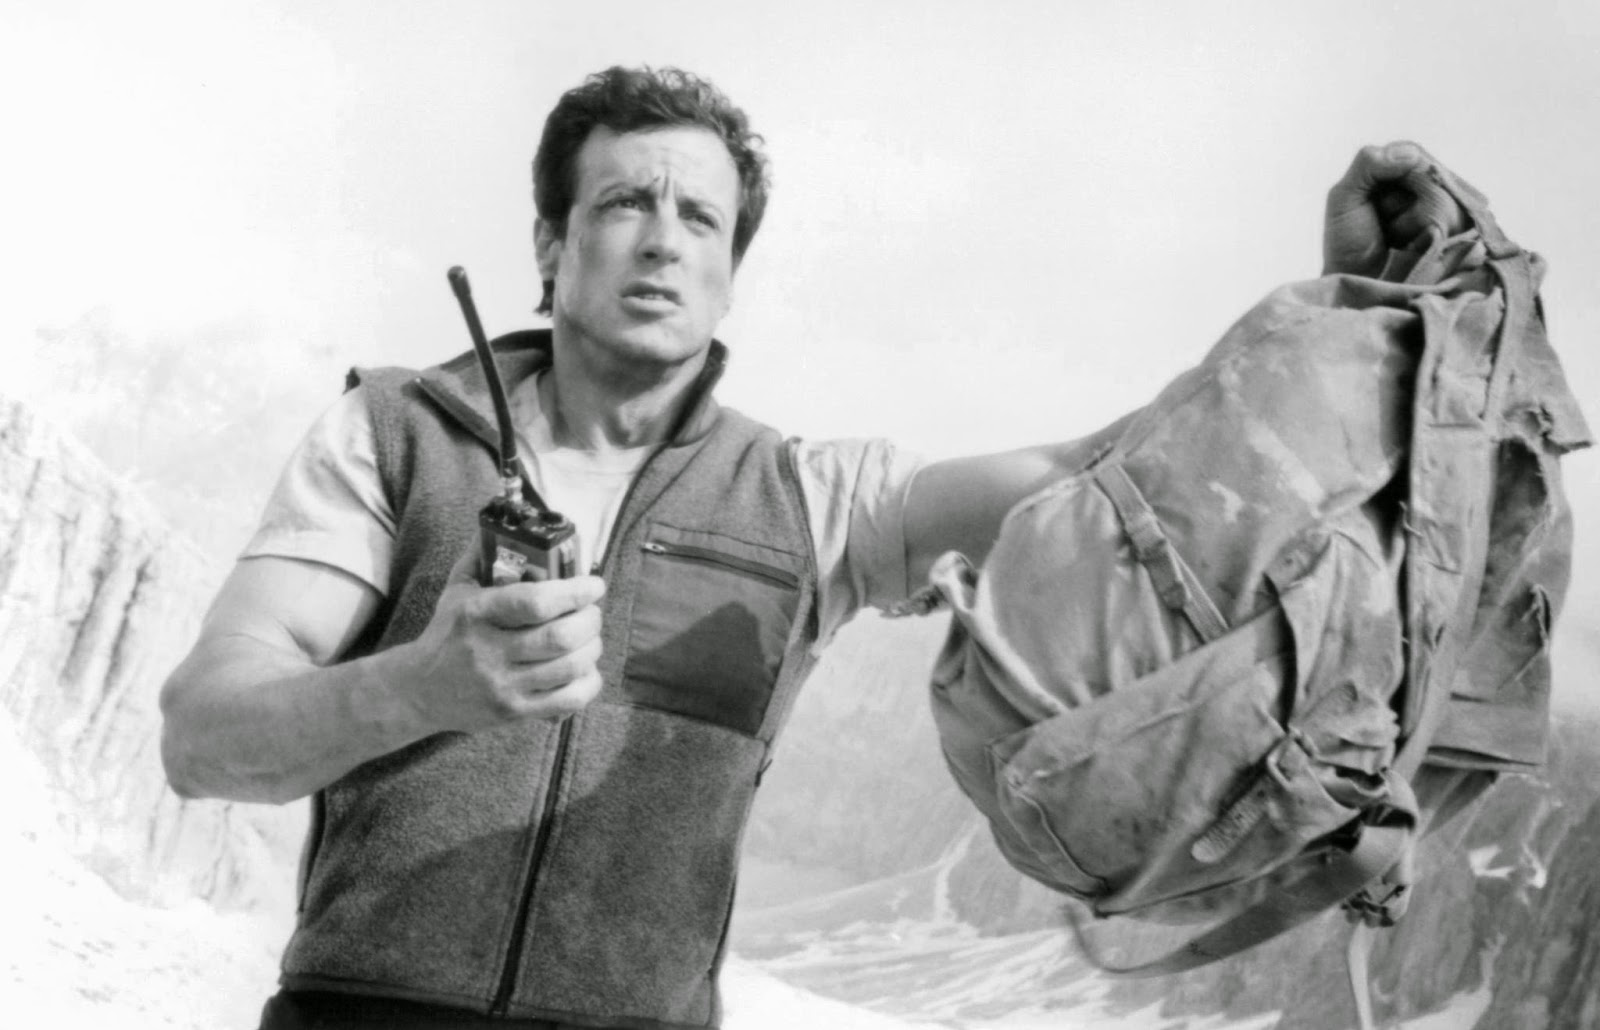 Cliffhanger Sylvester Stallone mountain climbing action movie